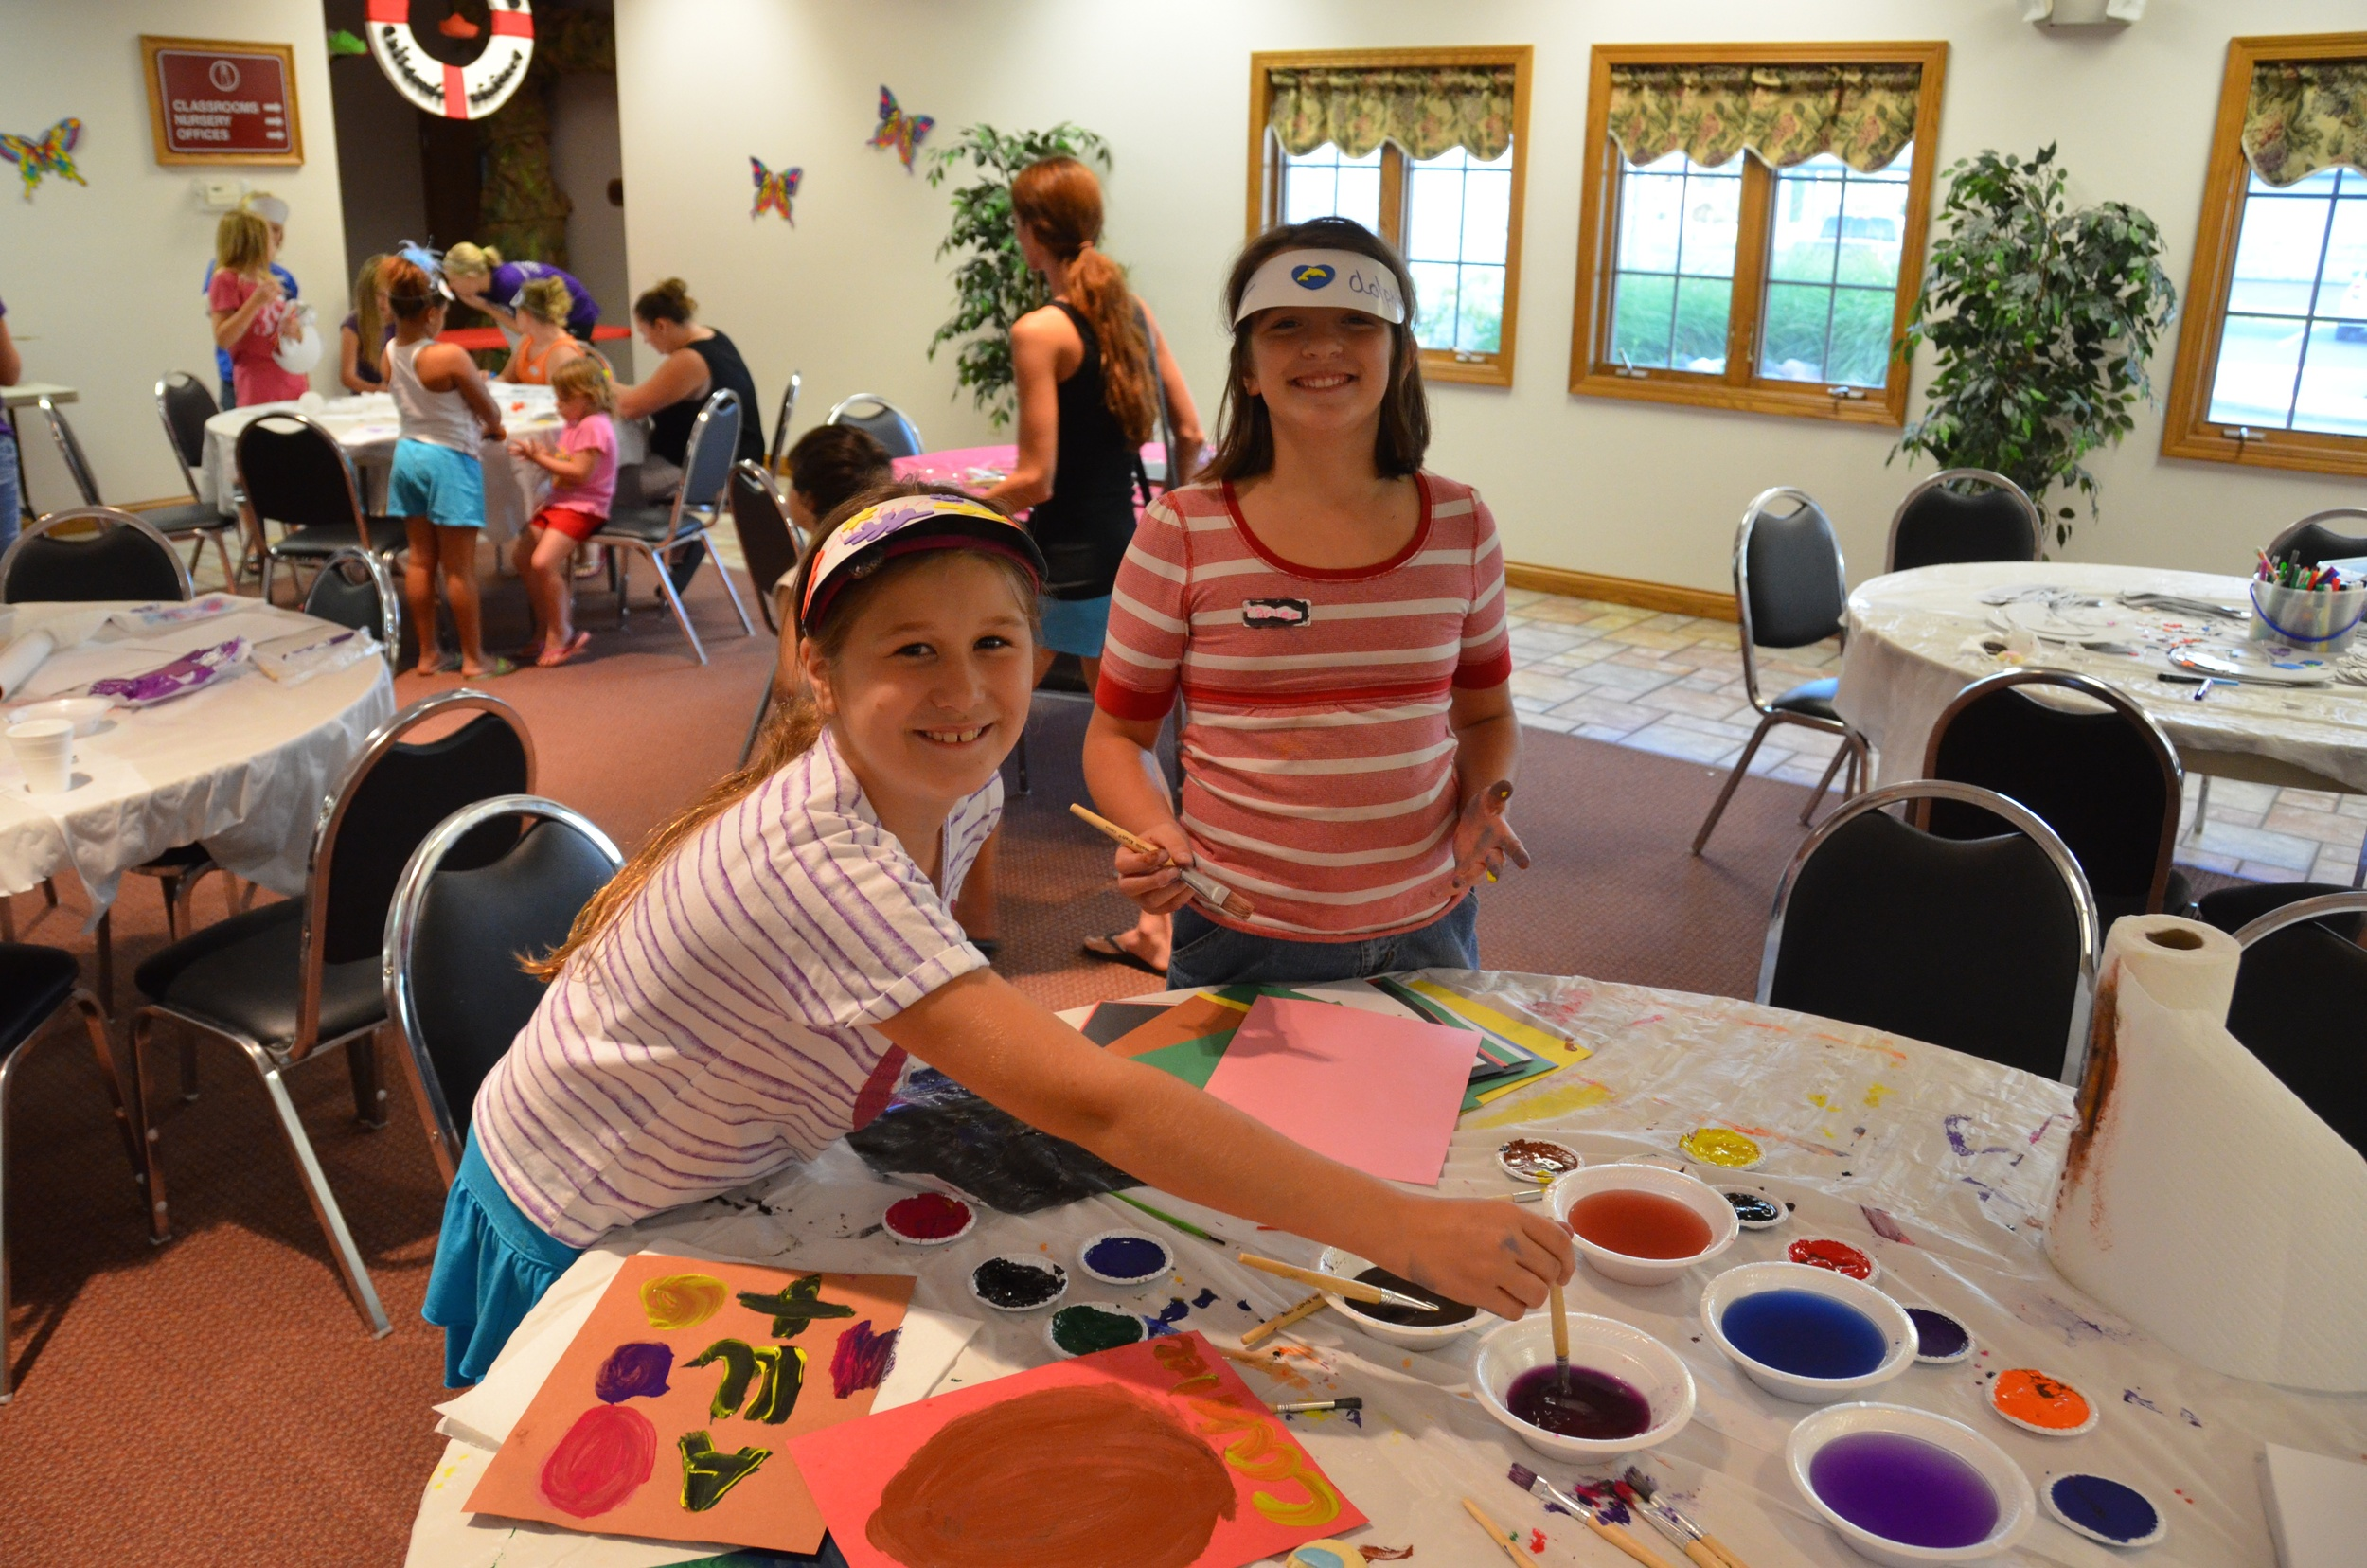 KIds ARt Church 9 12 2011   95325.jpg